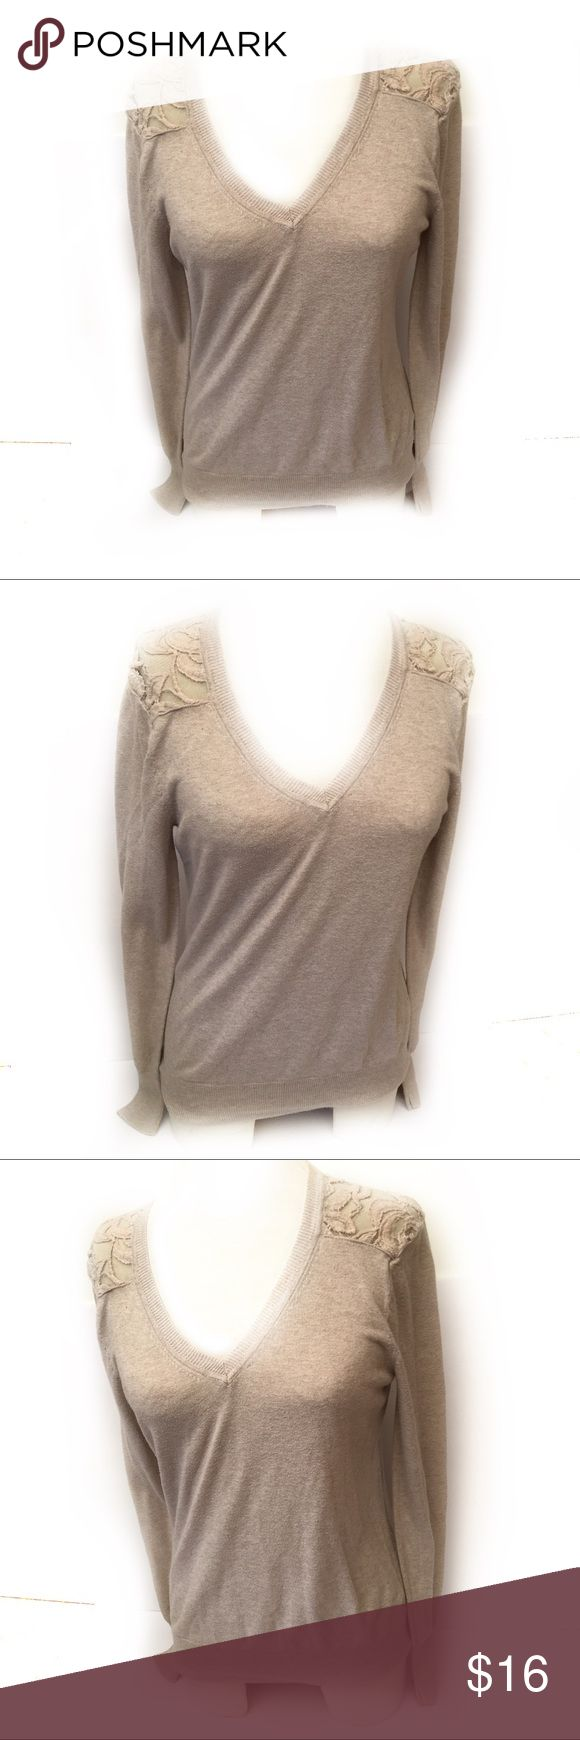 "Lauren Conrad M Beige Crew Neck Lace Sleeves Lauren Conrad Women SZ M Beige Crew Neck Lace Sleeves Long Sleeve Shirt  20"" arm pit to arm pit 25"" length LC Lauren Conrad Tops Tees - Long Sleeve"